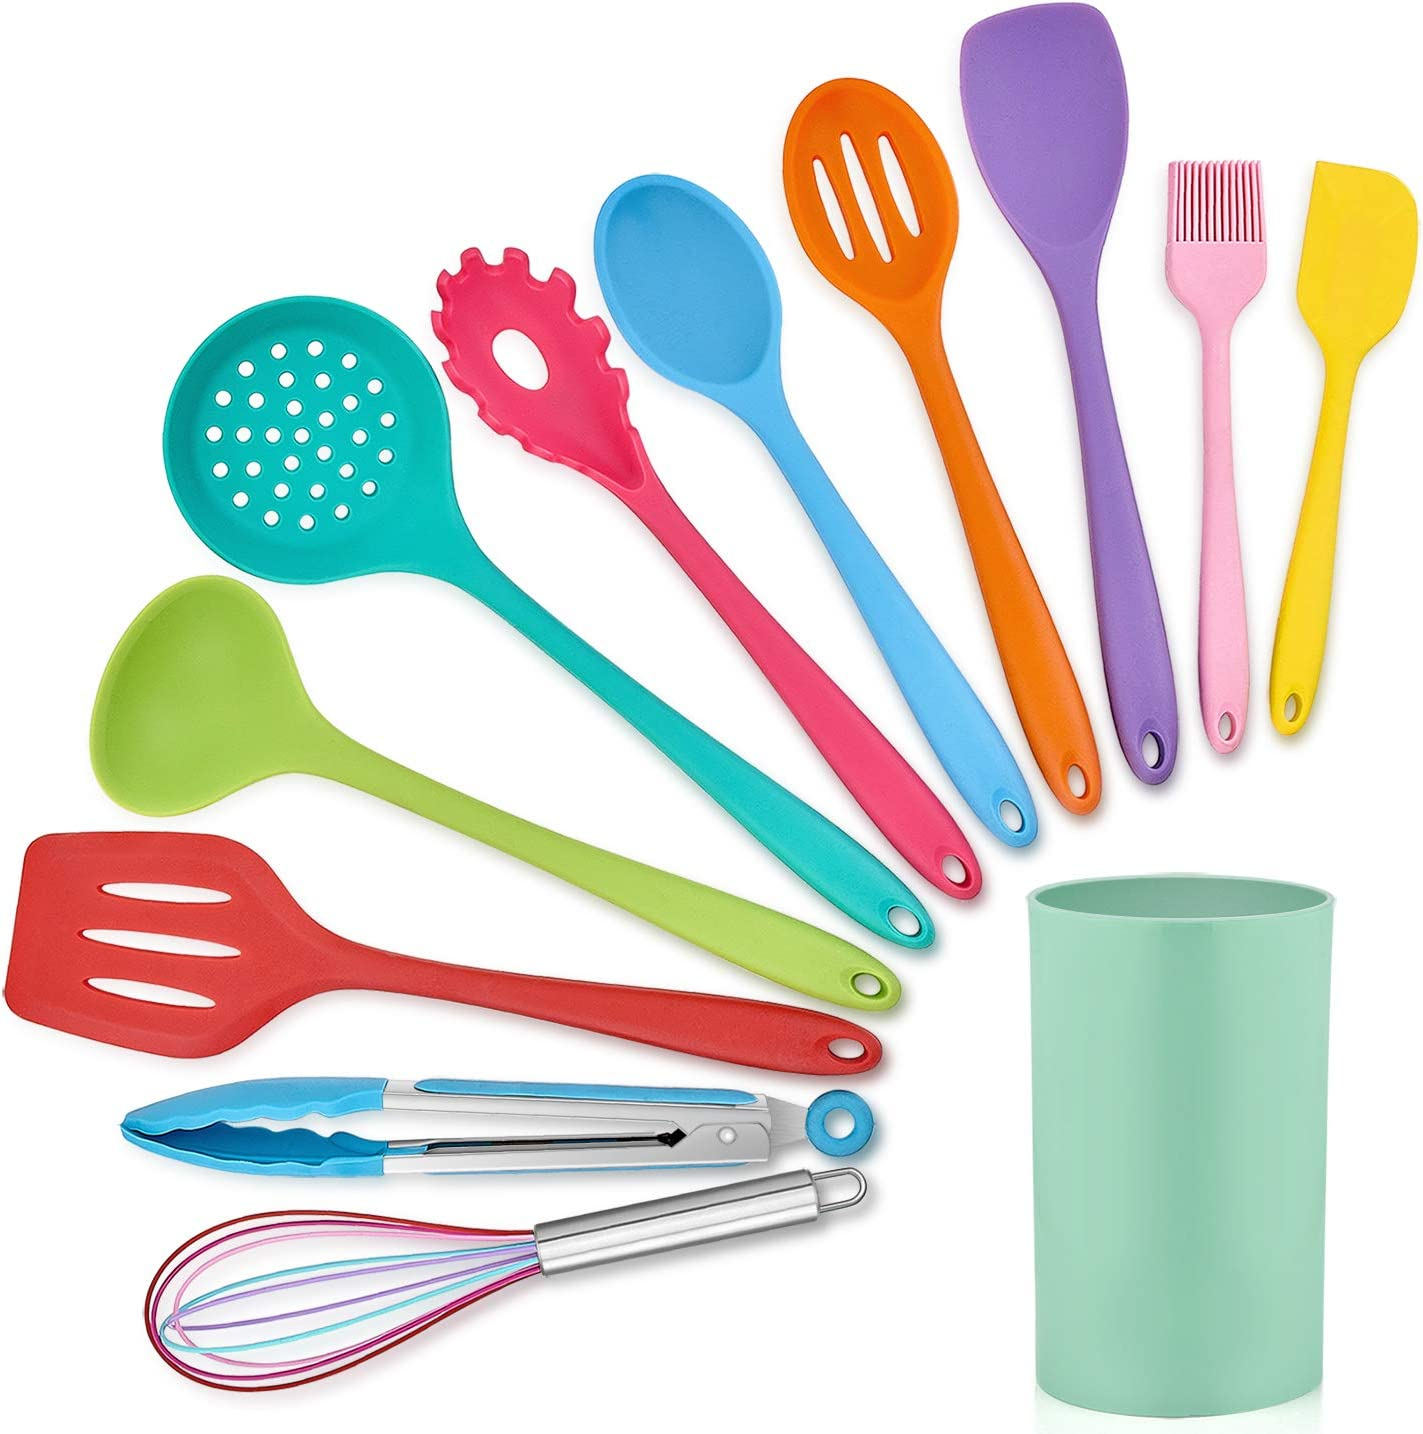 LIANYU 12-Piece Silicone Kitchen Cooking Utensils with Holder, Kitchen Tools Set Include Slotted Spatula Spoon Turner Ladle Tong Whisk, Dishwasher Safe, Multi Colored